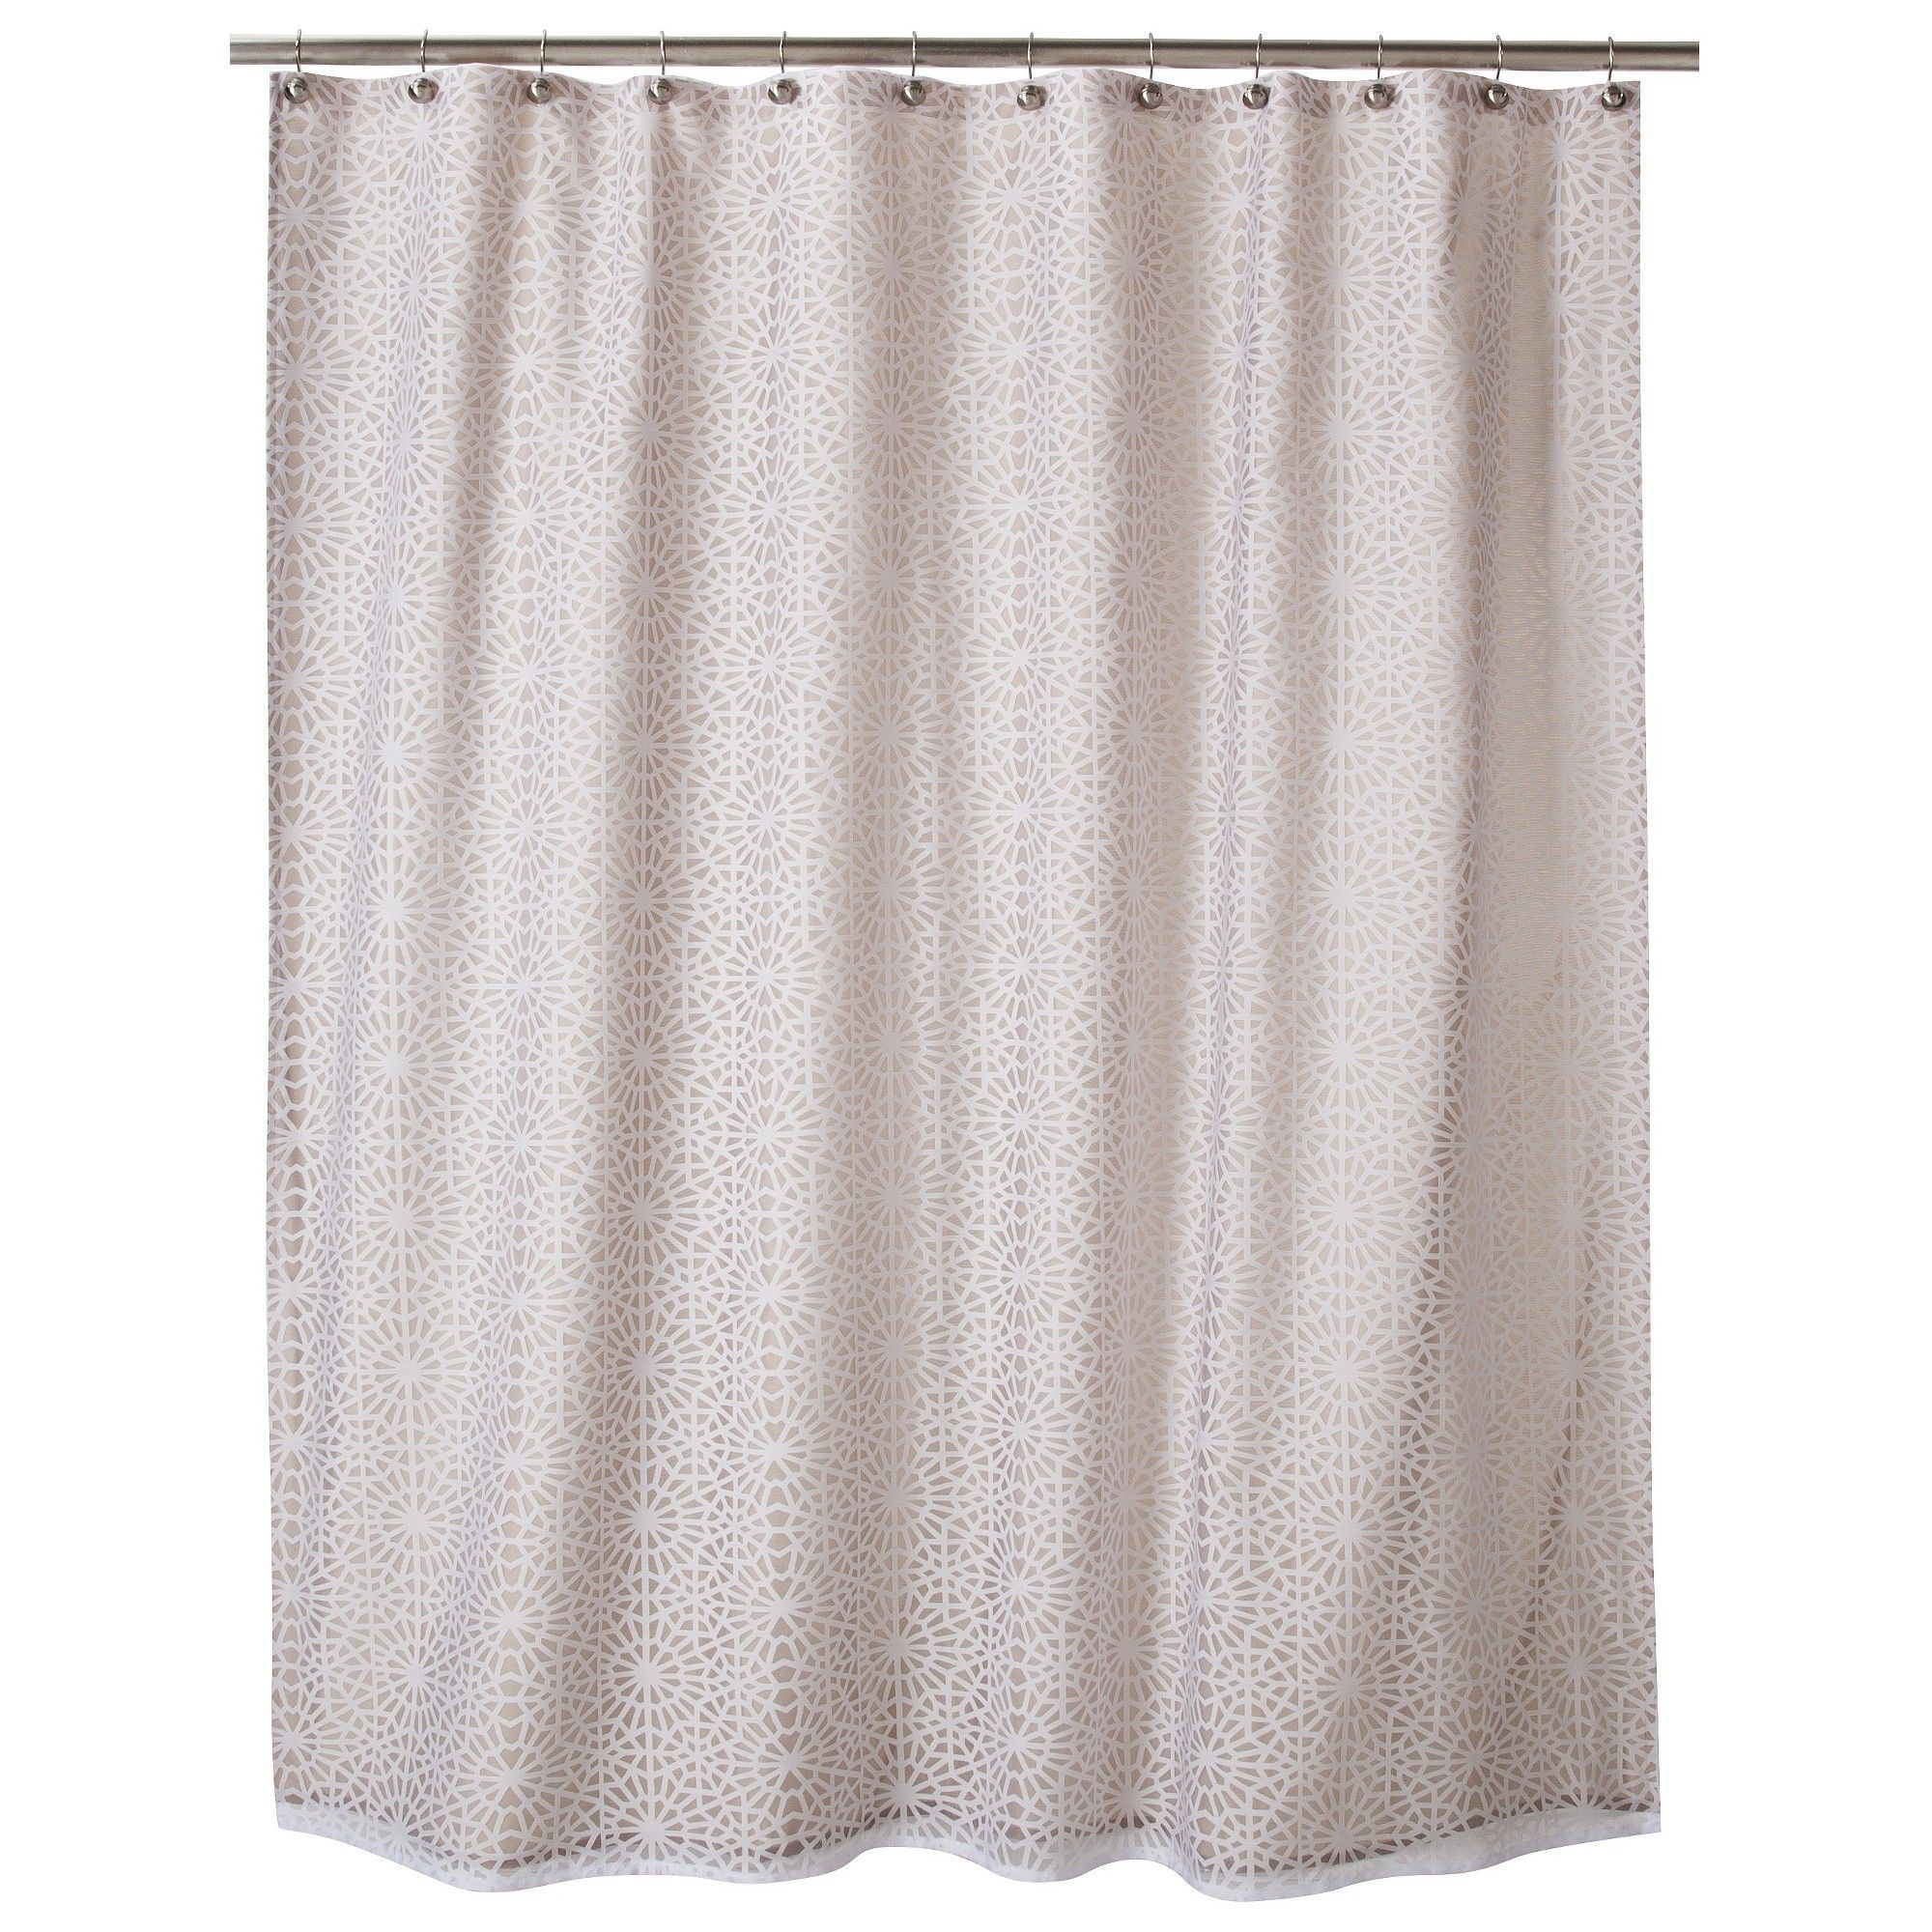 Geometric Burnout Shower Curtain Tan